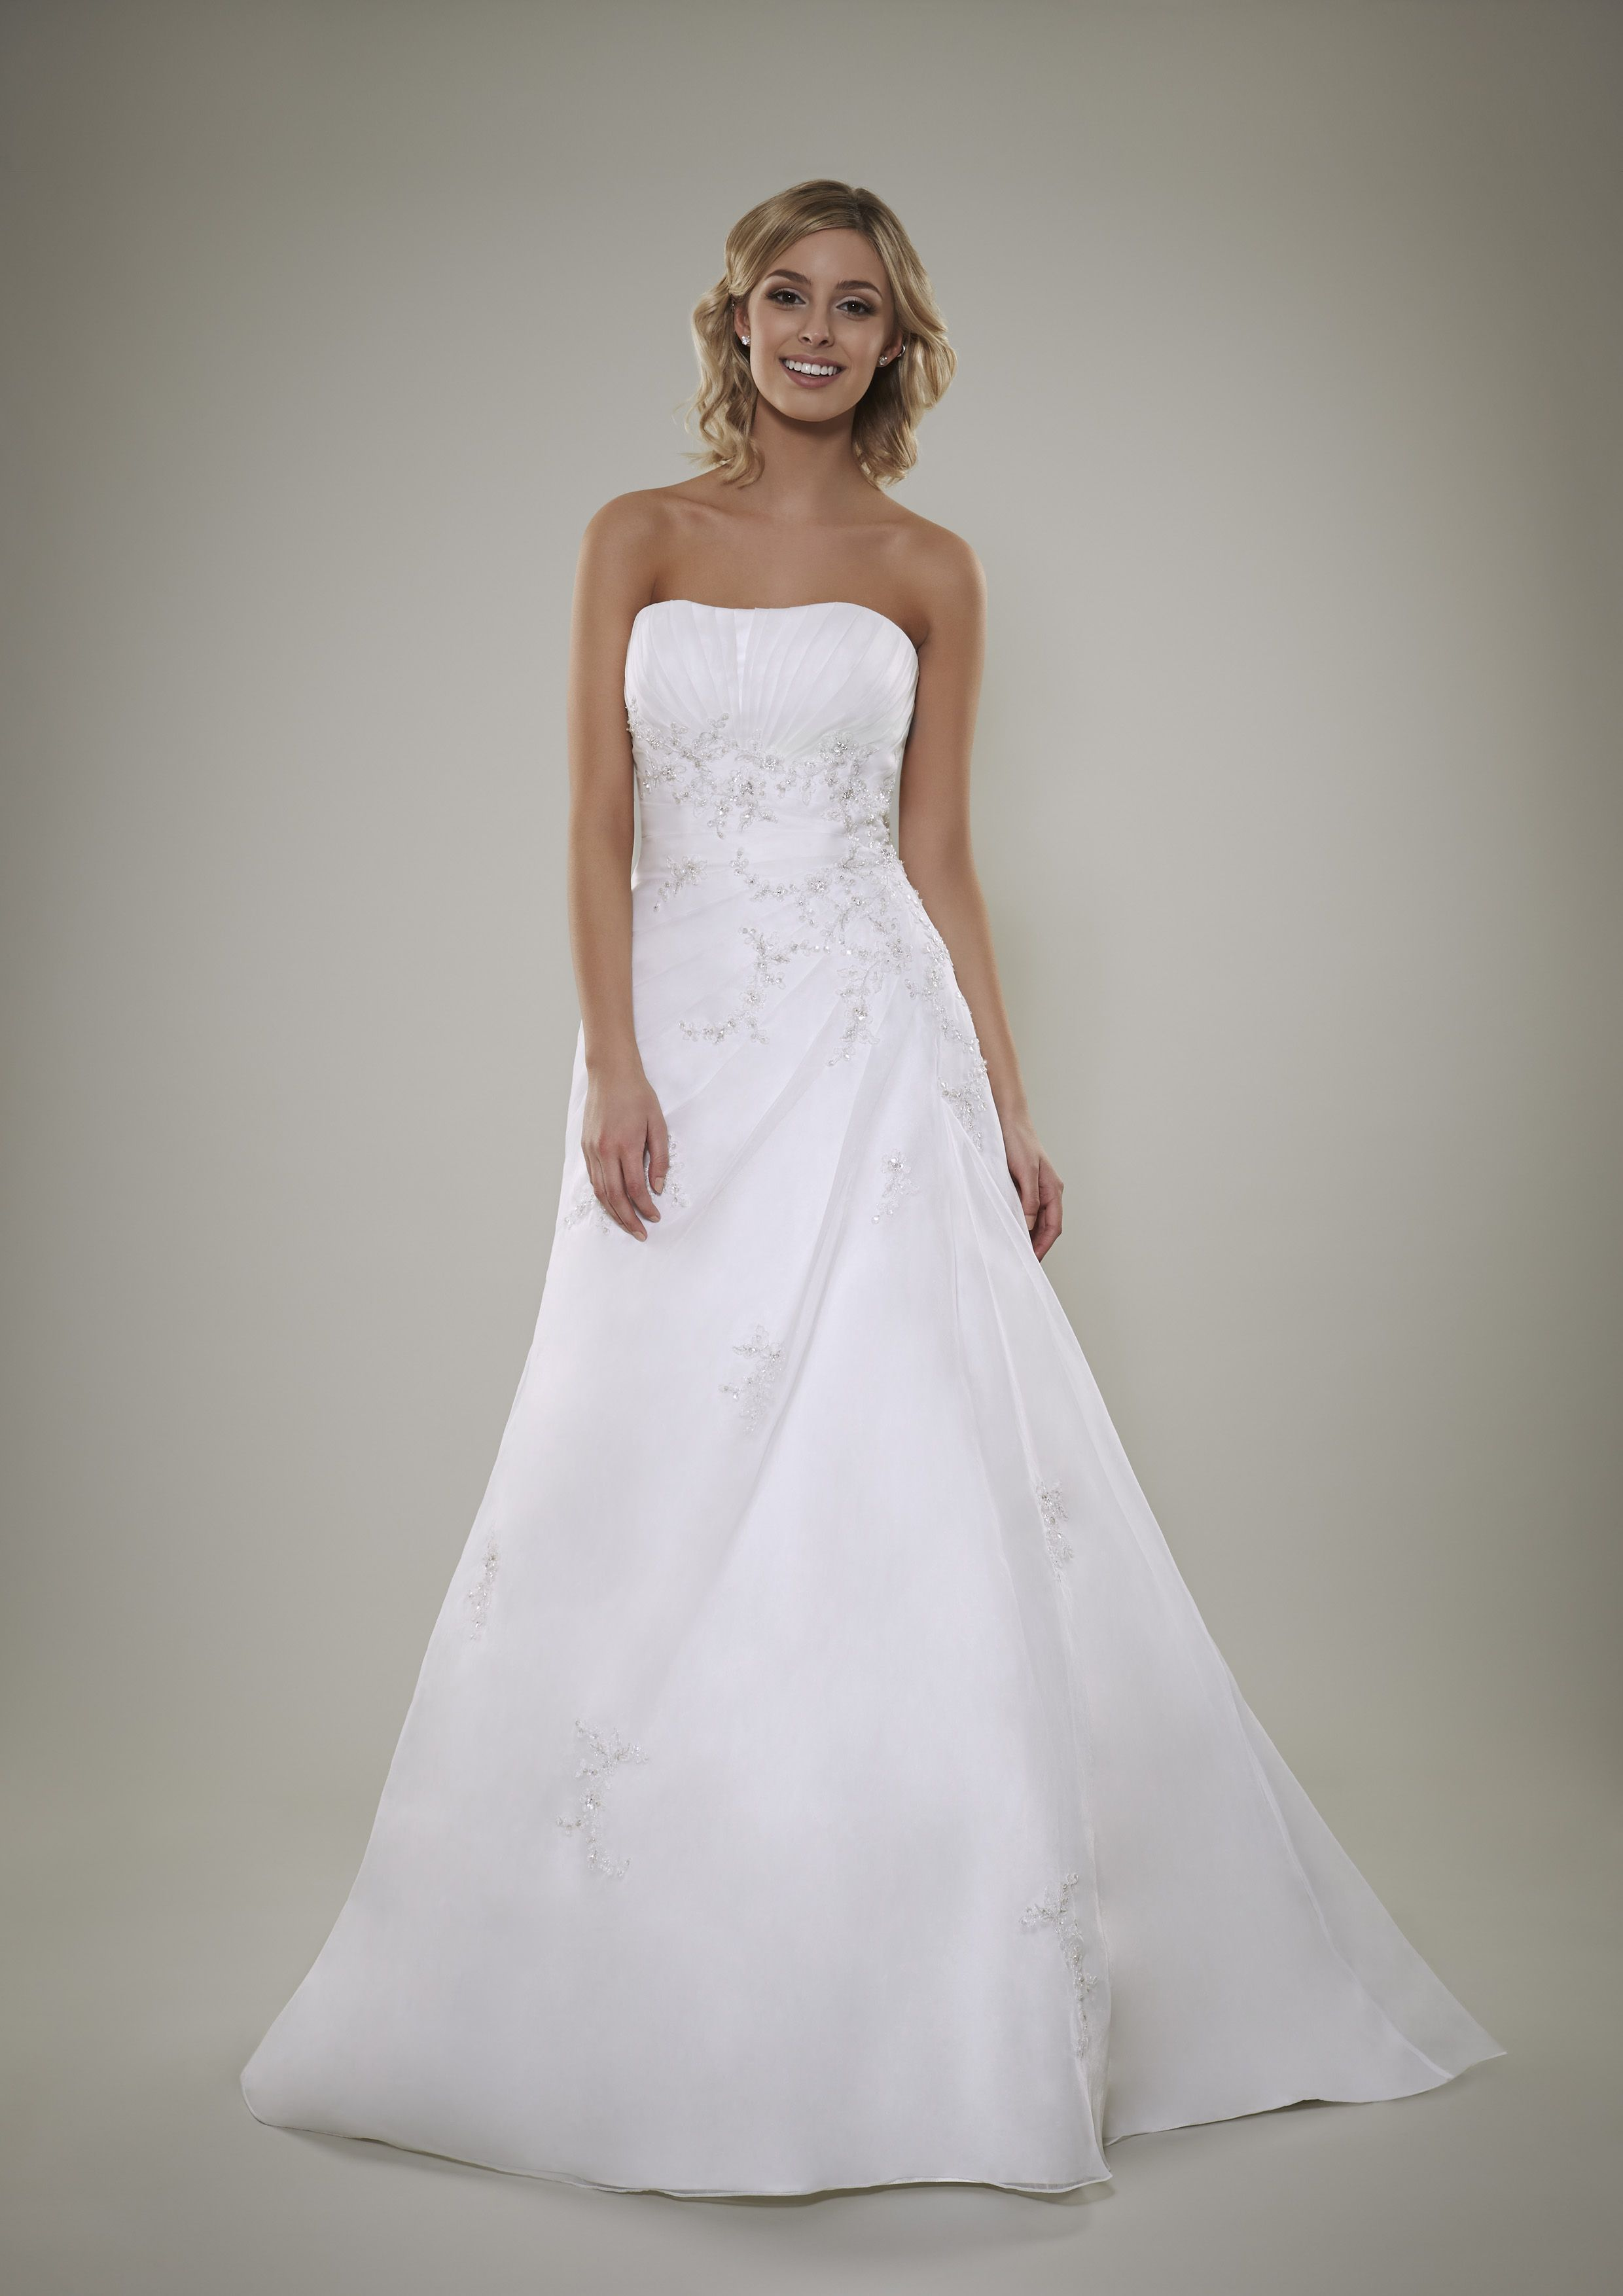 Candas from romantica of devon pb brudekjoler pinterest envious bridal is a glasgow based bridal store that stocks some of the worlds most renowned wedding dress designers were now a leading bridal shop in ombrellifo Gallery